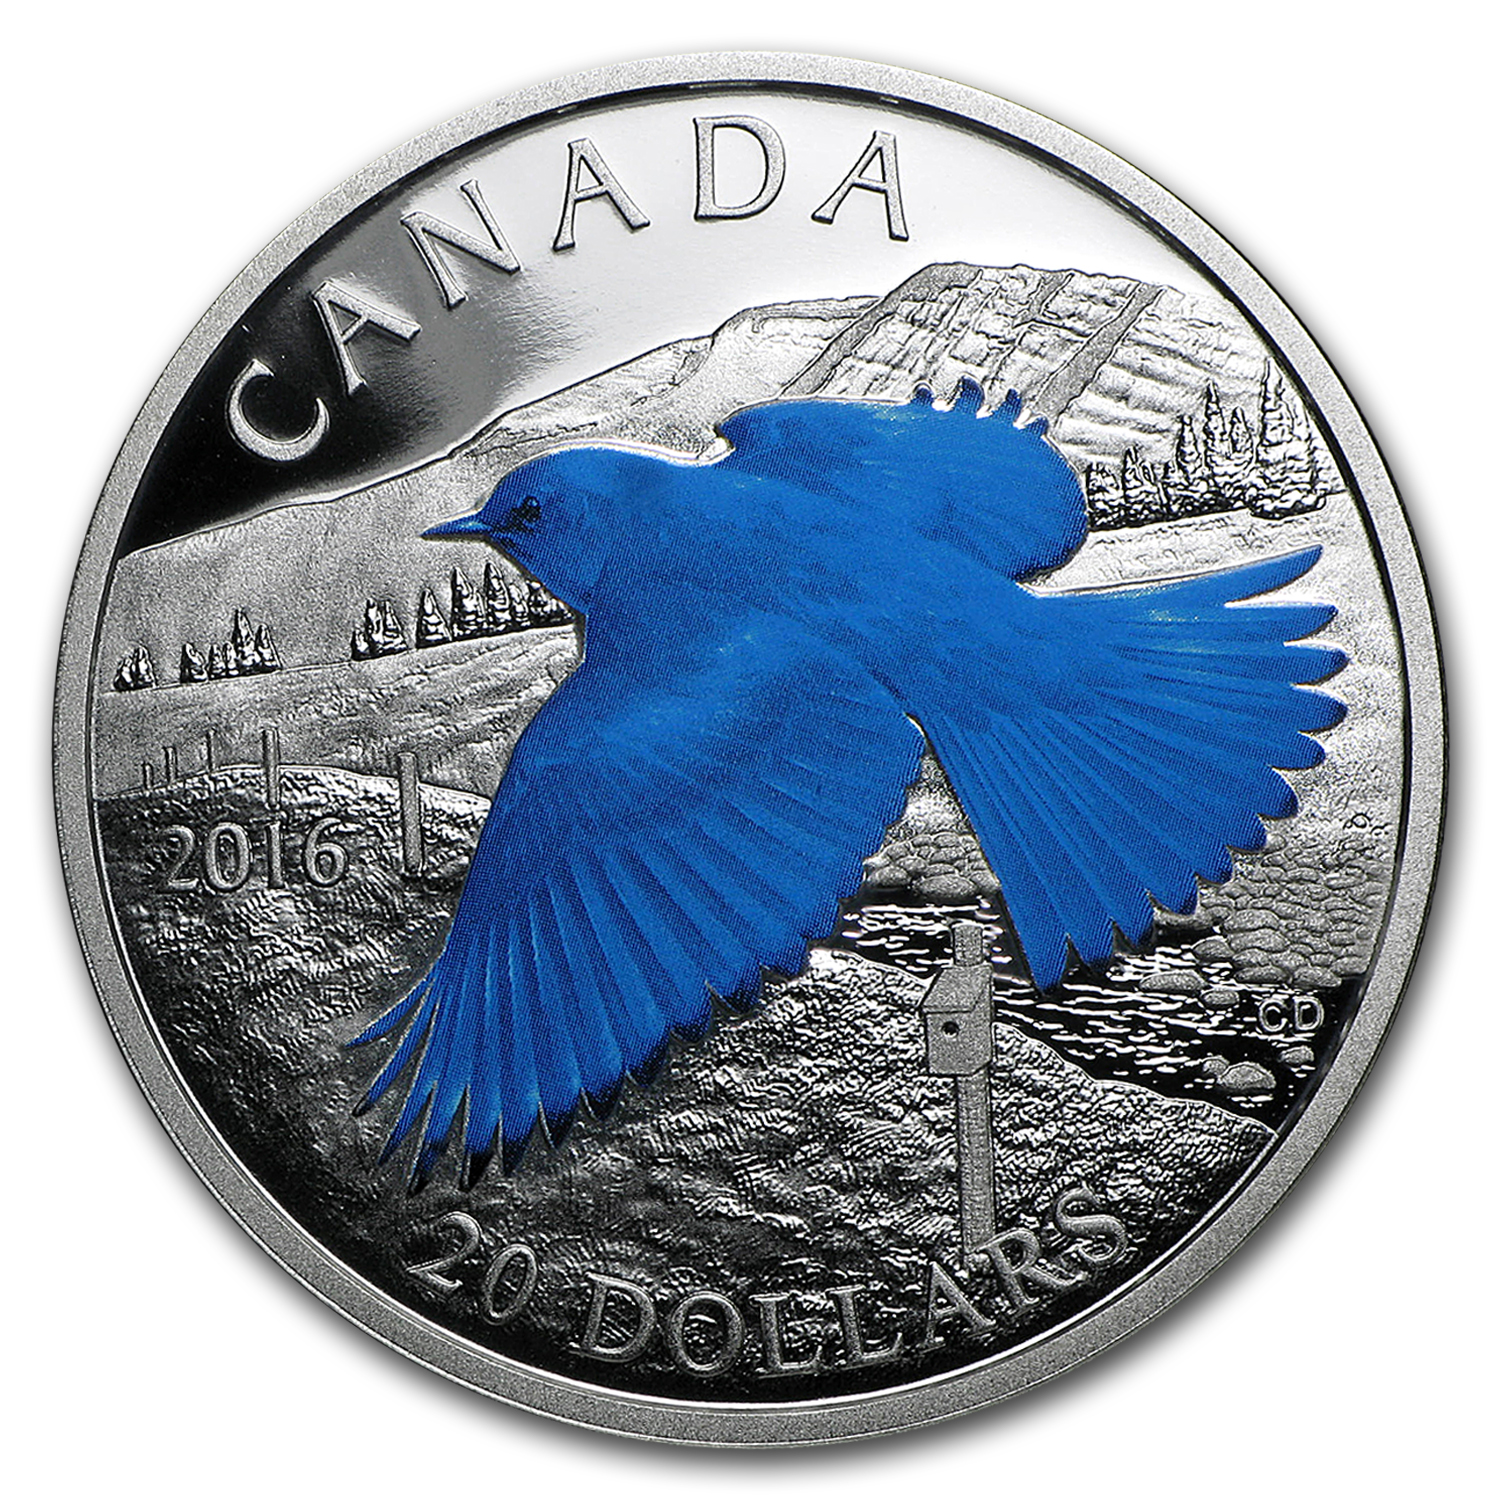 2016 Canada 1 oz Silver Migratory Birds (Mountain Bluebird)